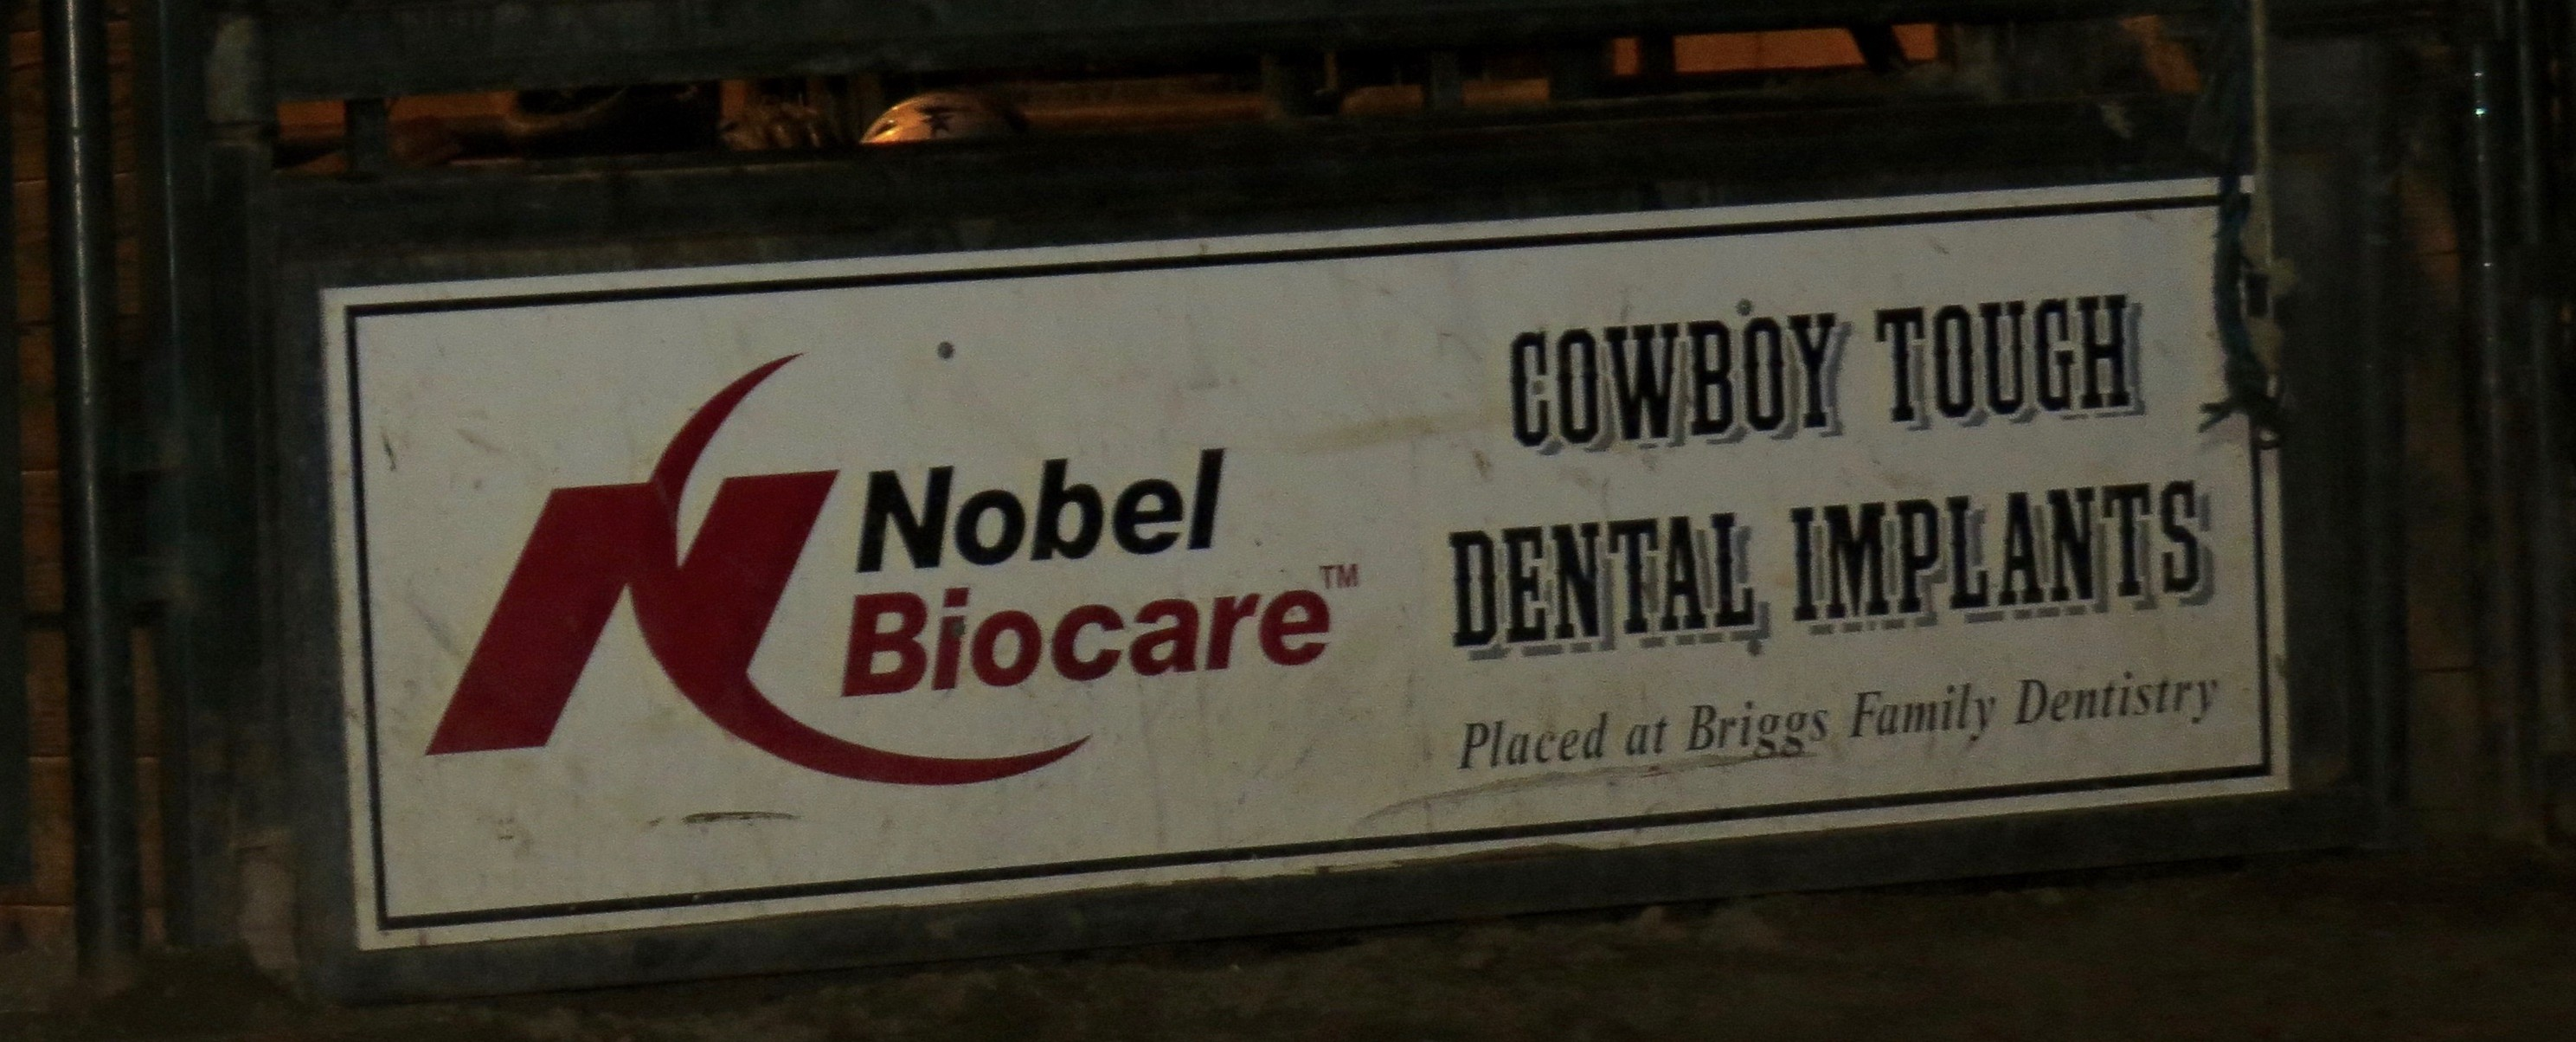 Cowboy tough dental implants